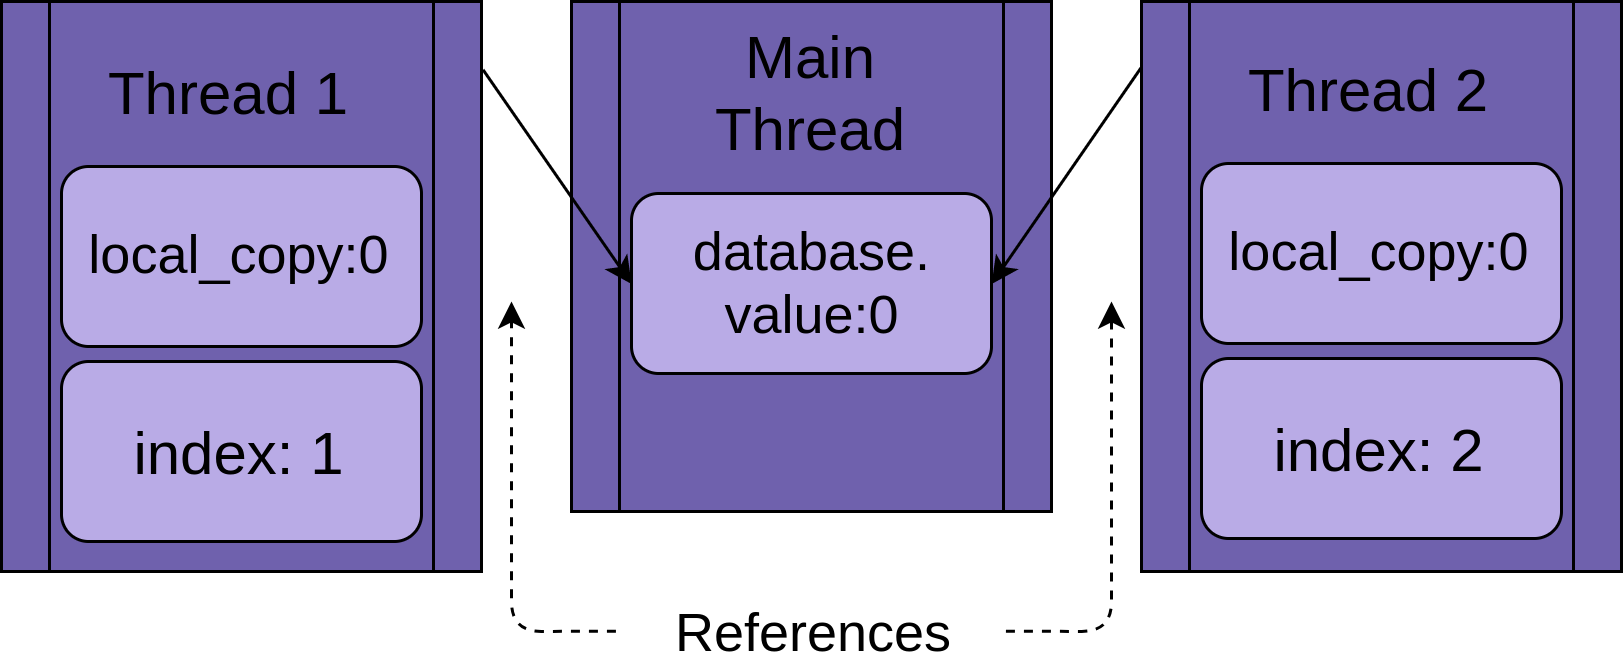 Thread 1 and Thread 2 use the same shared database.